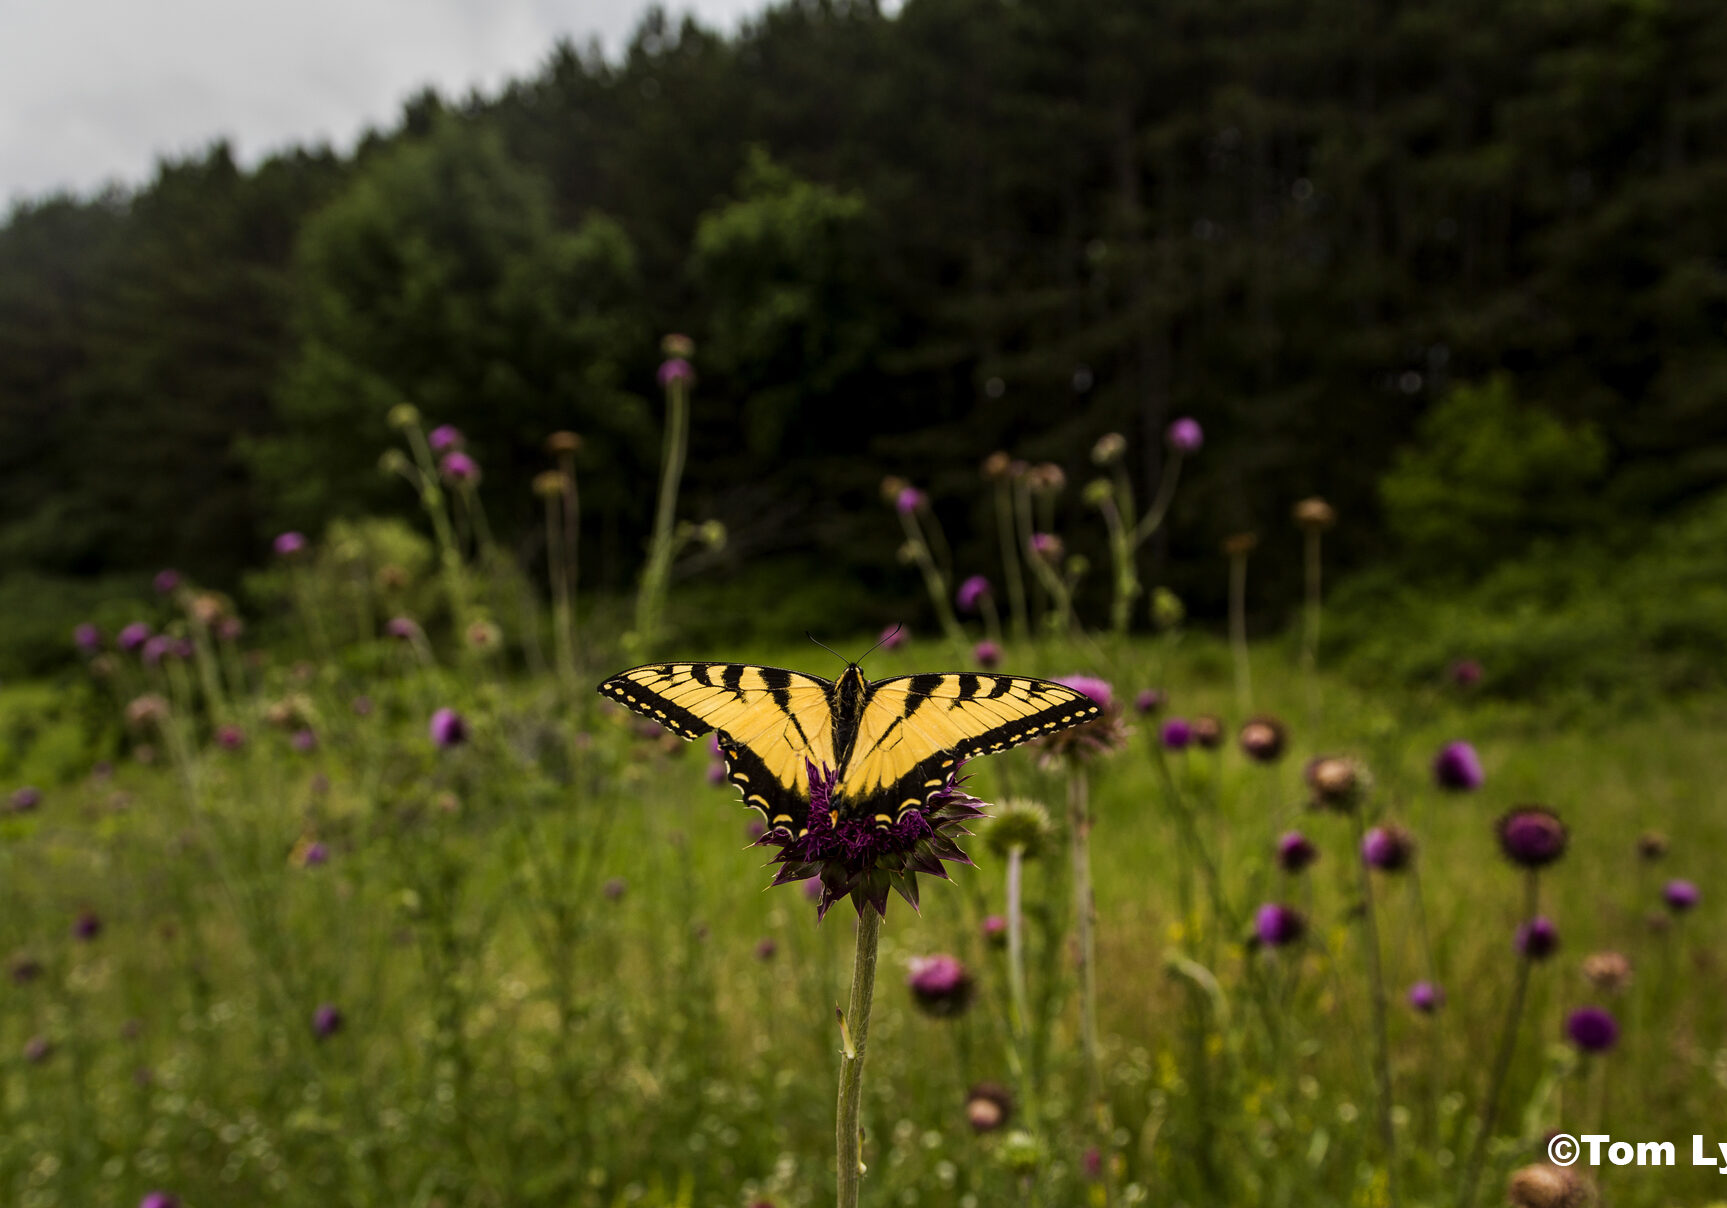 A Swallowtail butterfly sits atop a purple flower